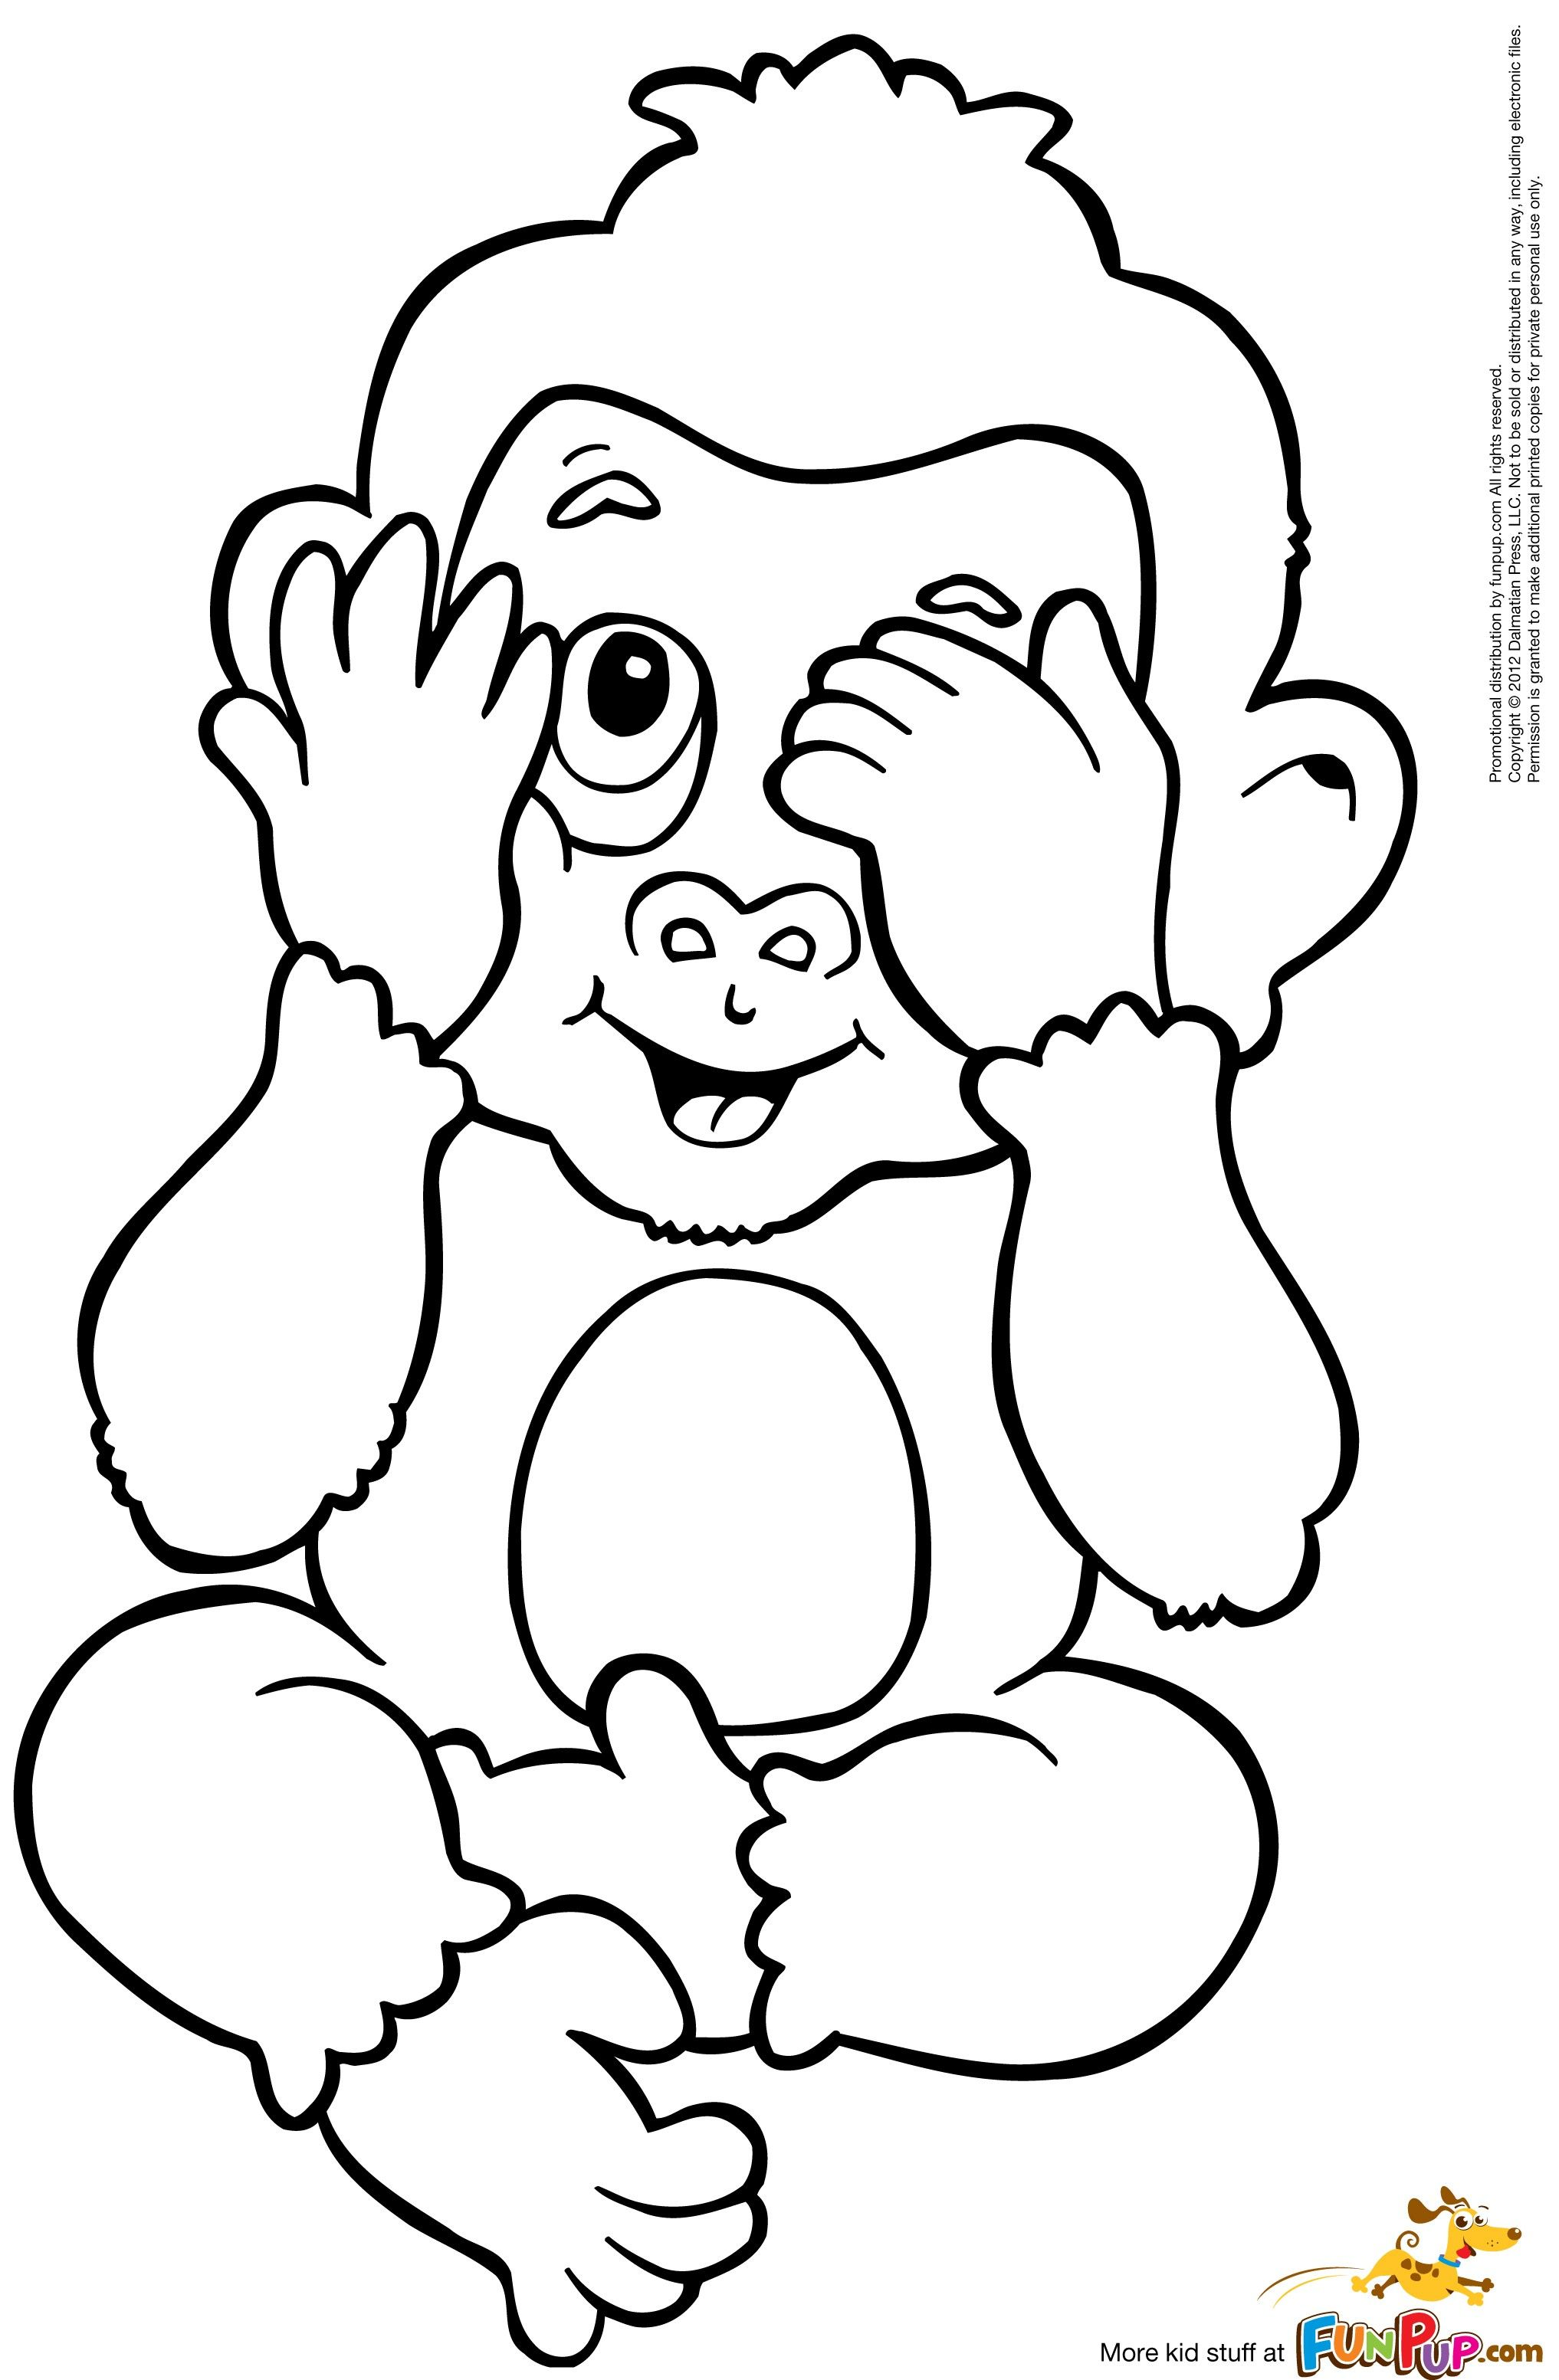 coloring pages of cute baby monkeys - cute baby owl coloring pages pictures online images